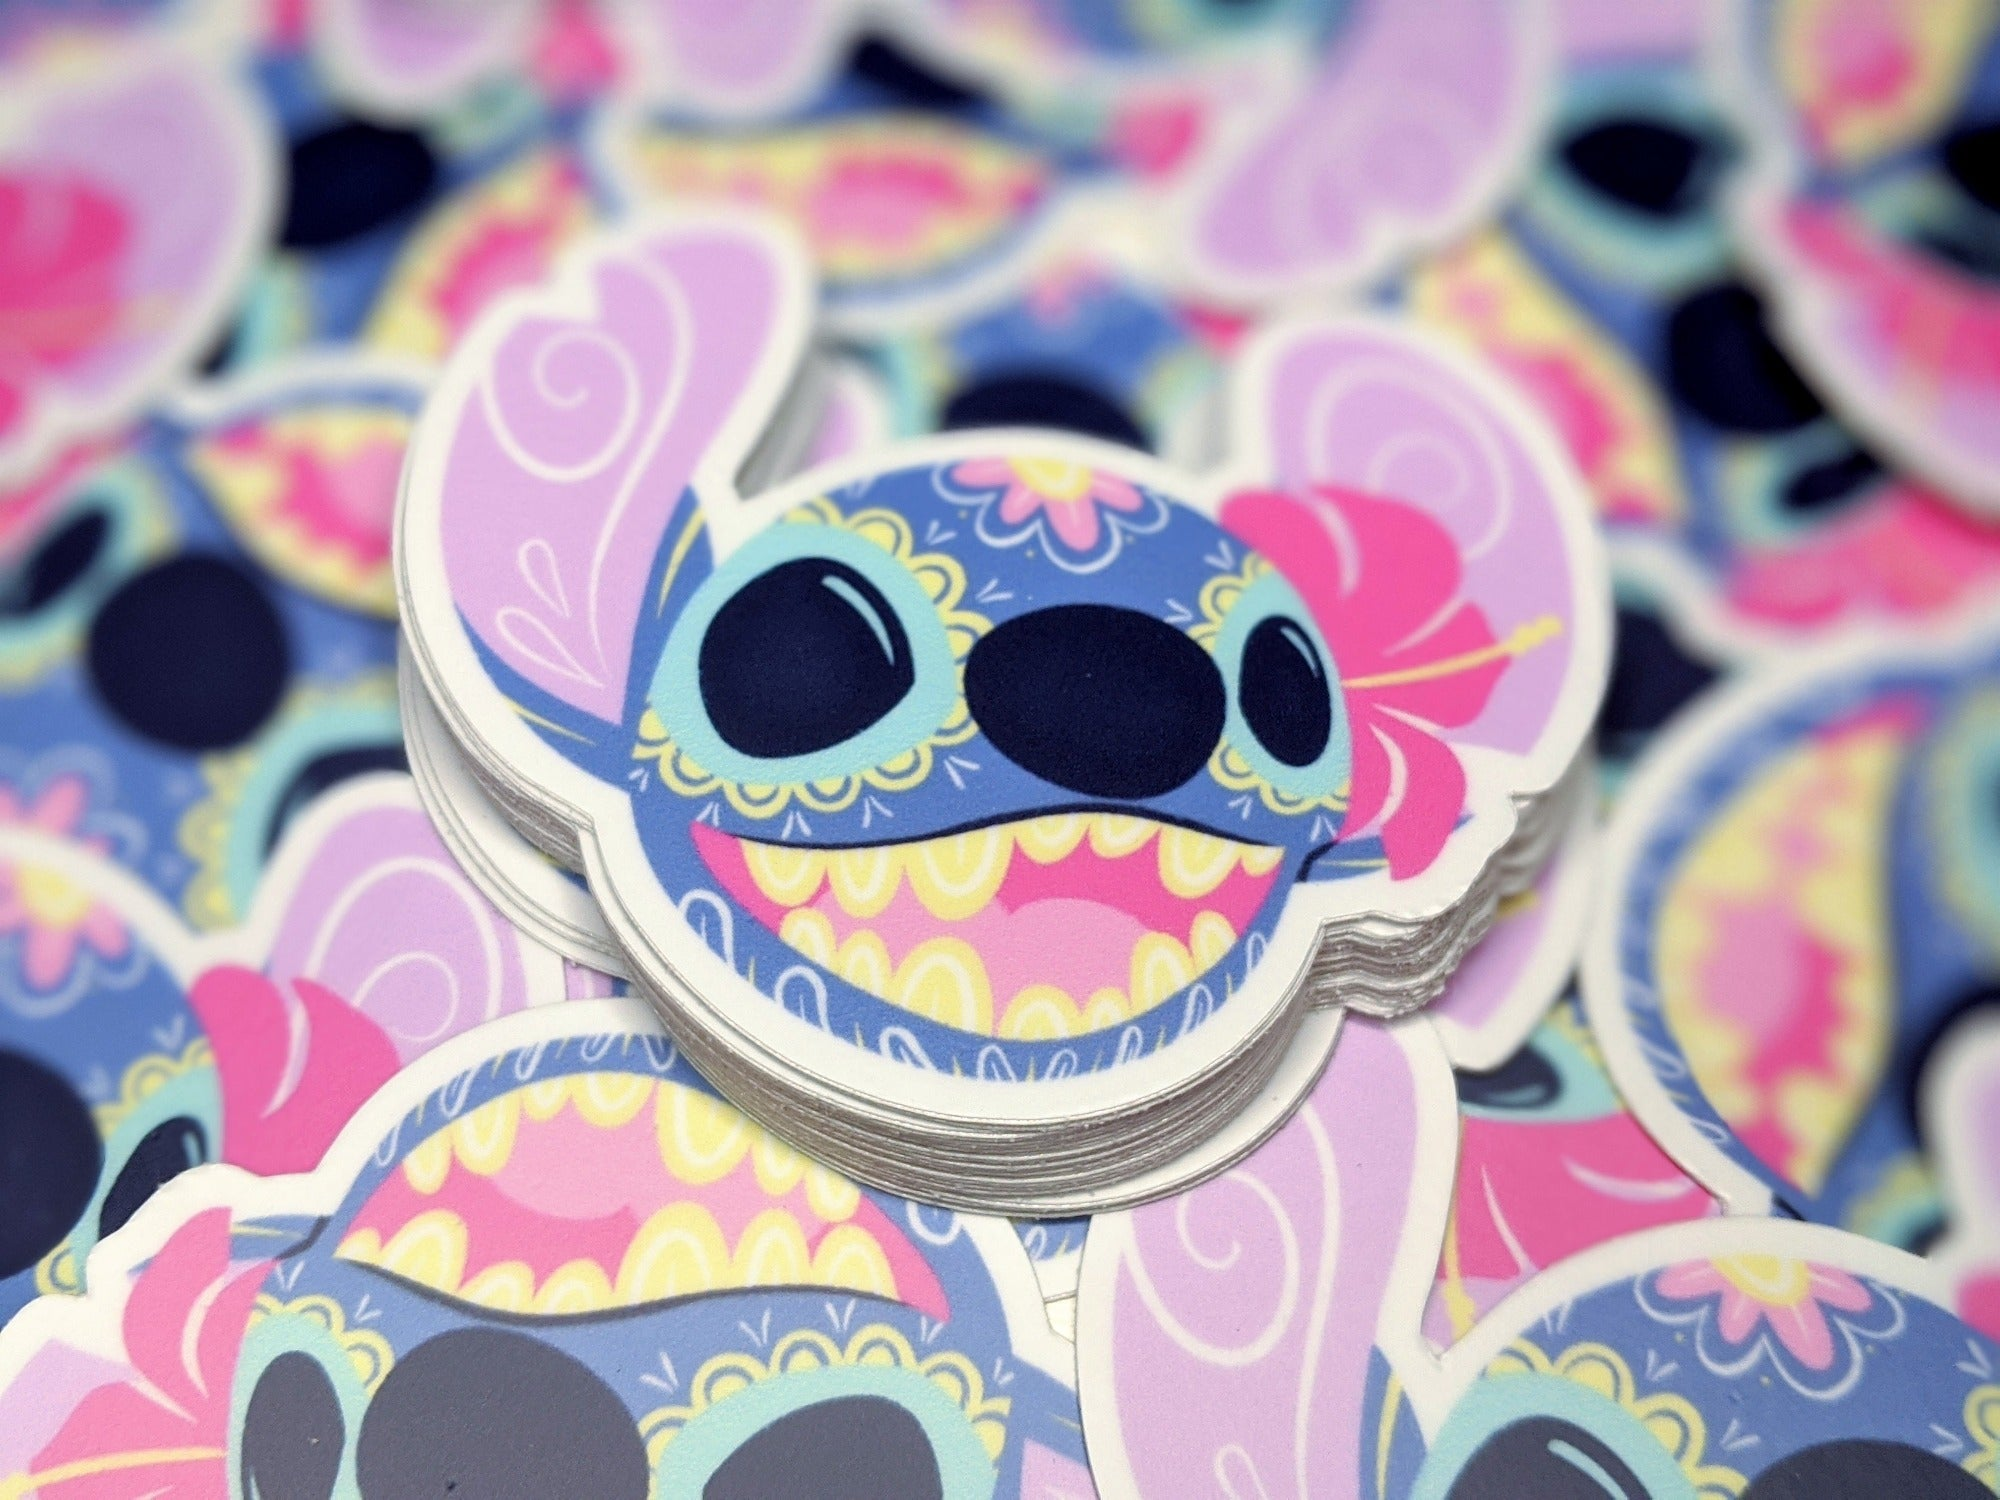 stich sugar skull vinyl sticker